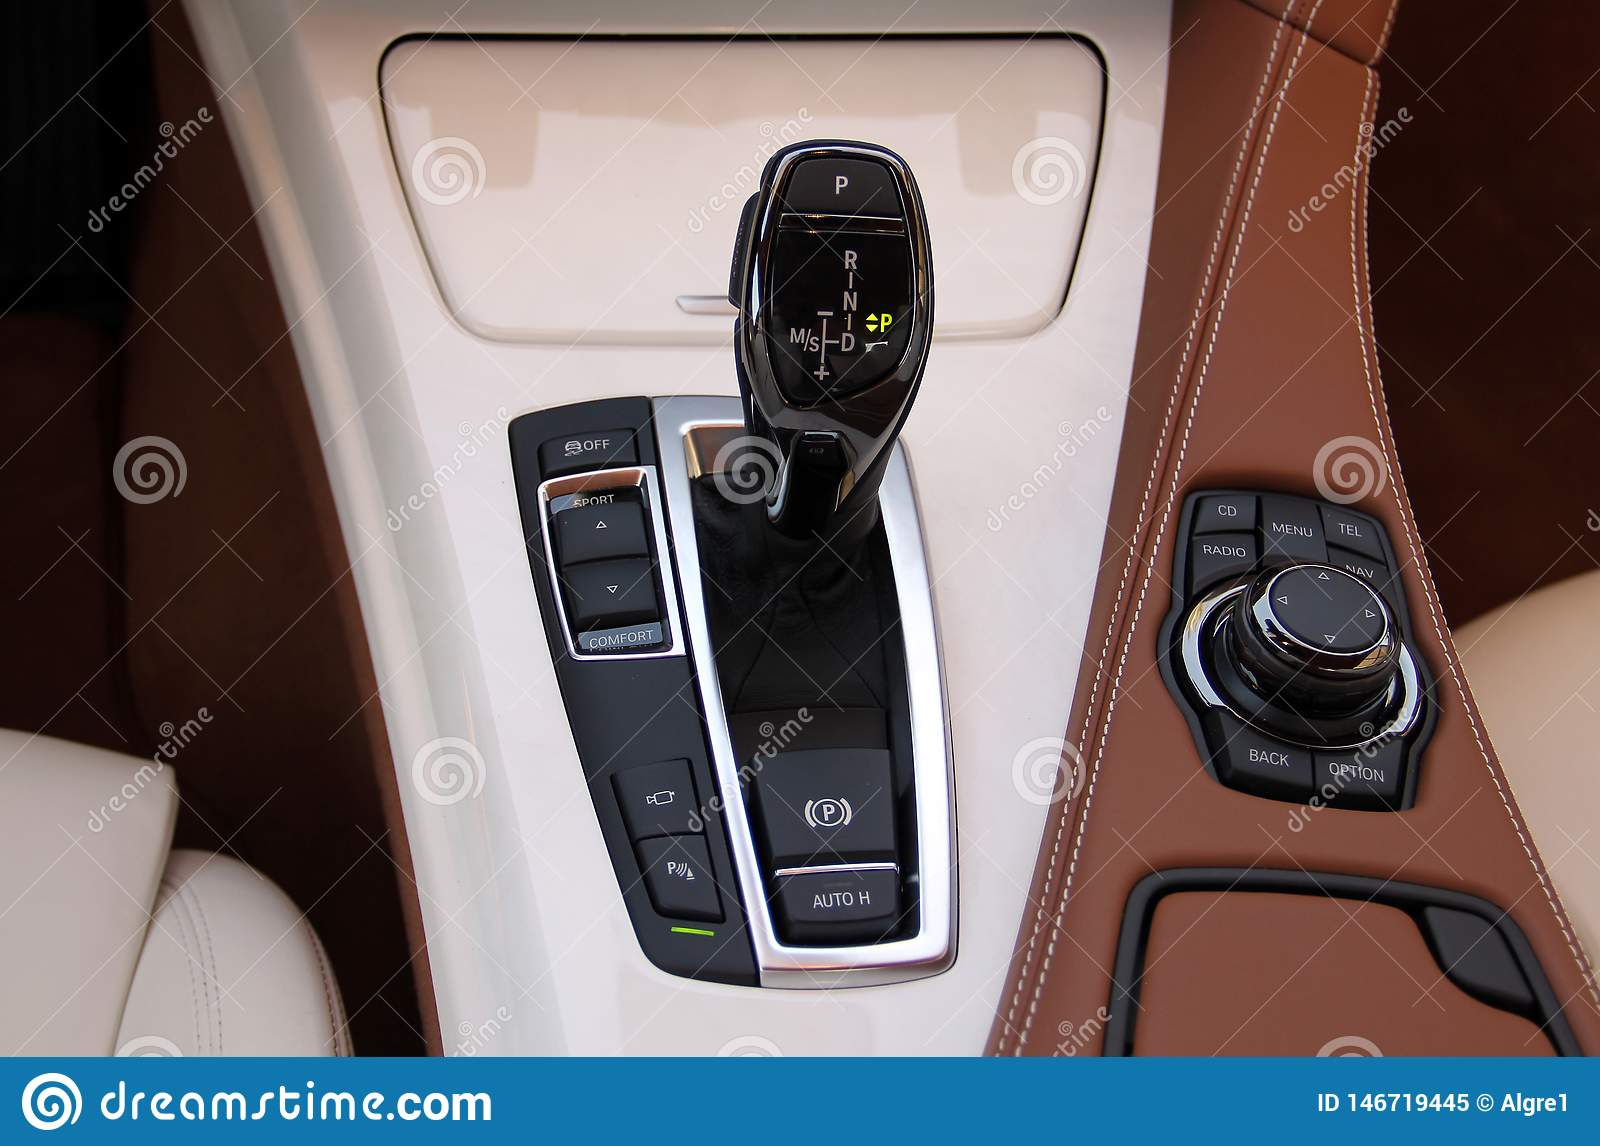 Automatic gear shift, and car panel buttons